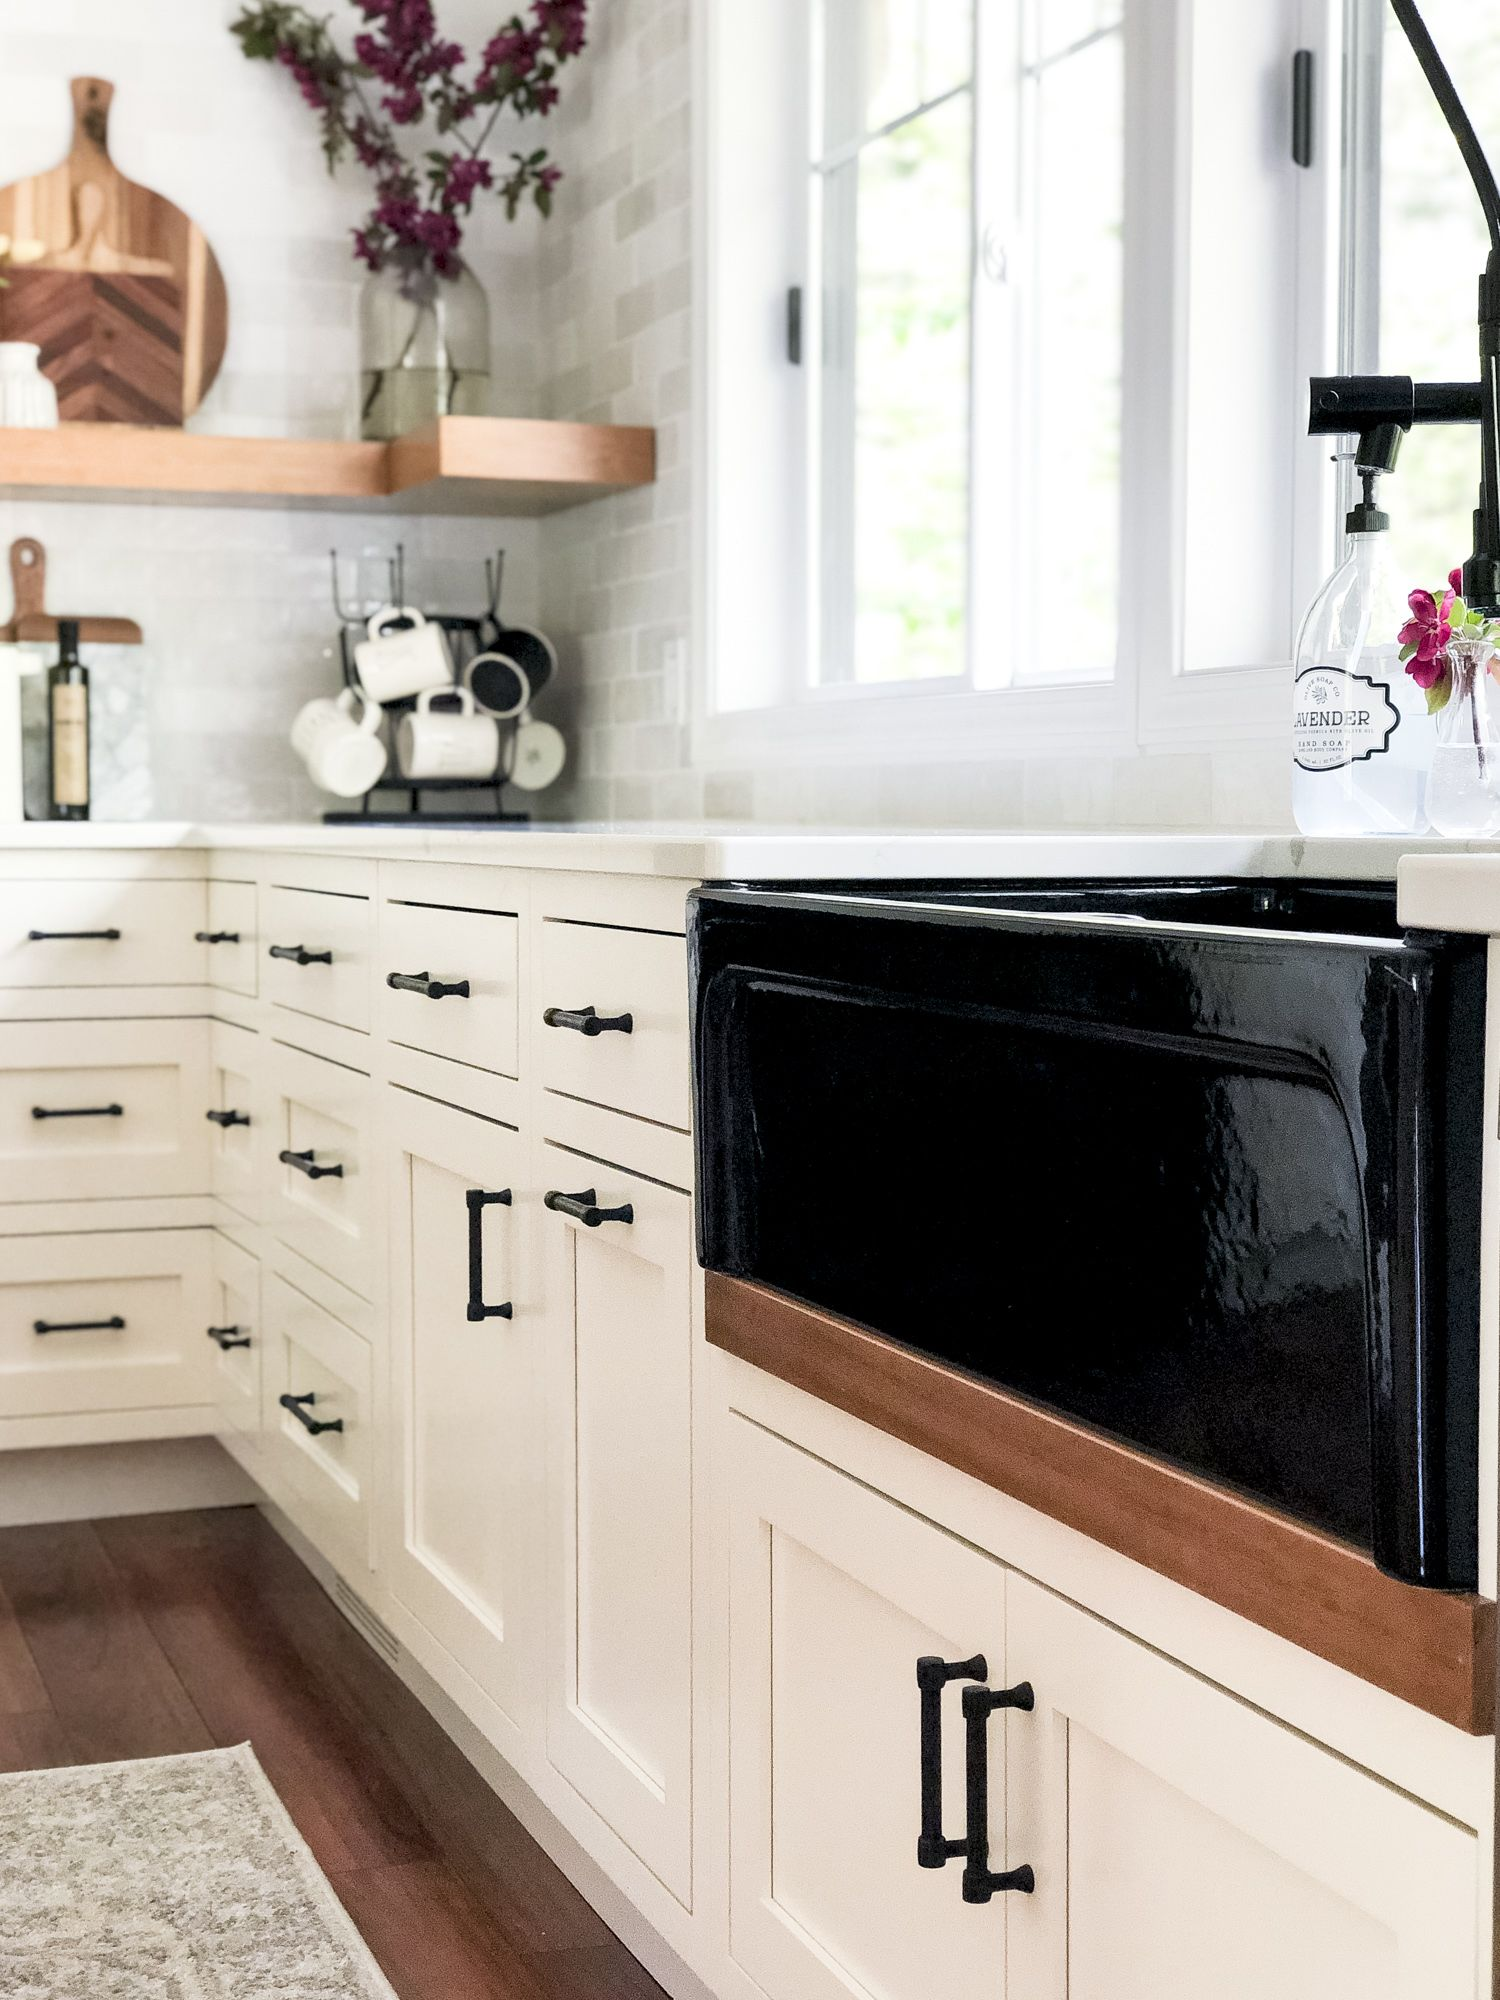 Designing a modern farmhouse kitchen with a black